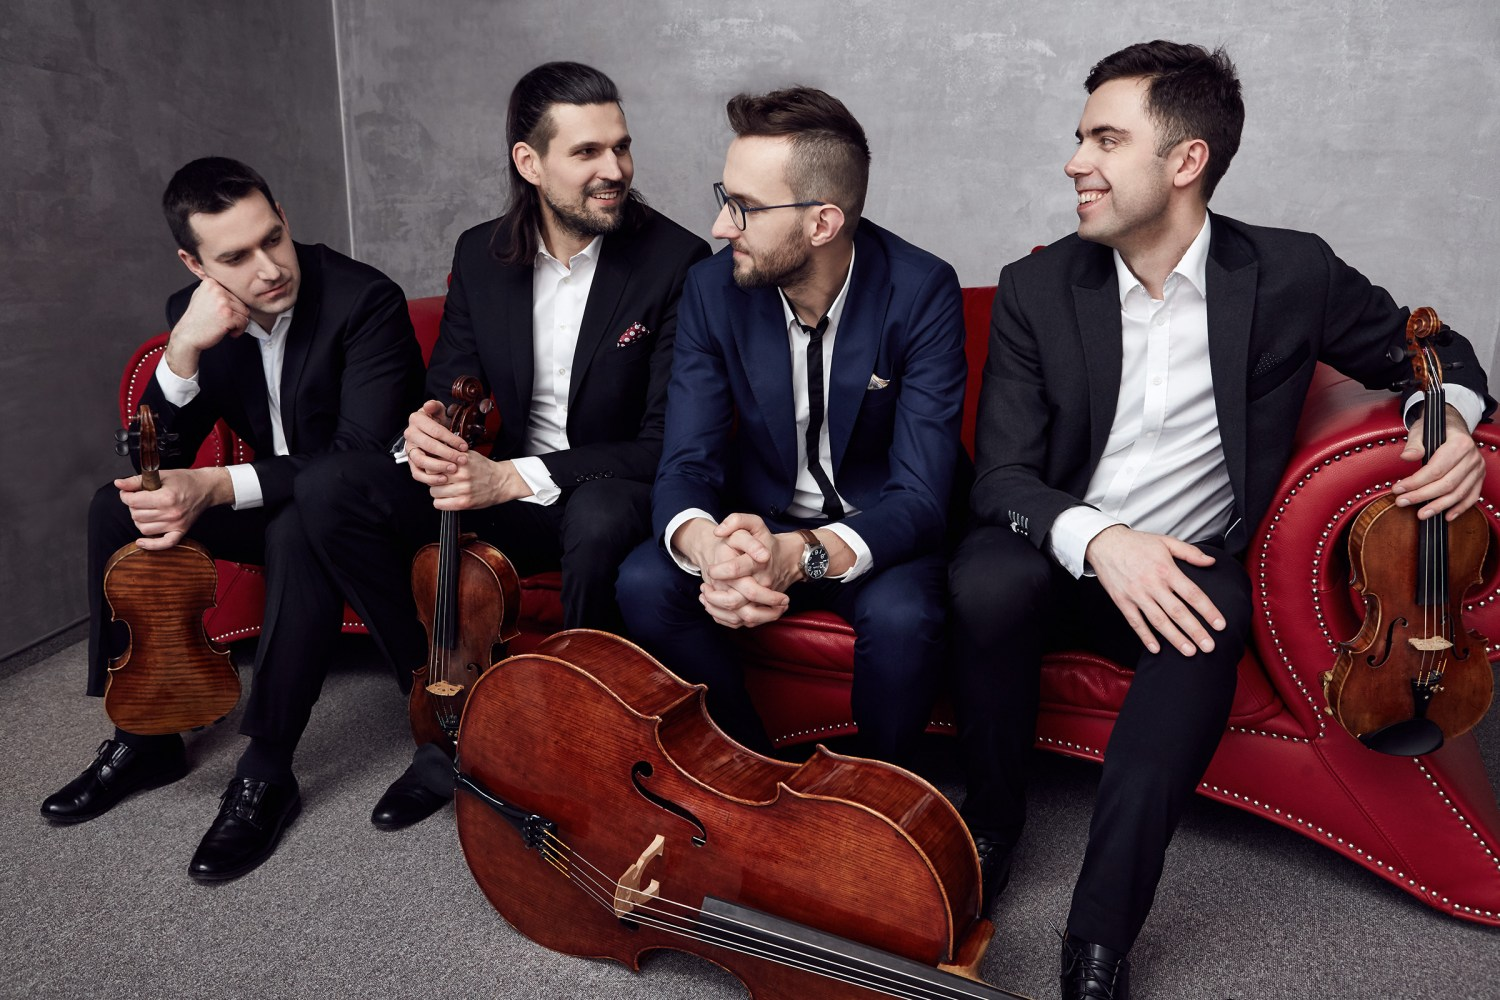 Atom String Quartet, photo: Ivon Wolak/press materials